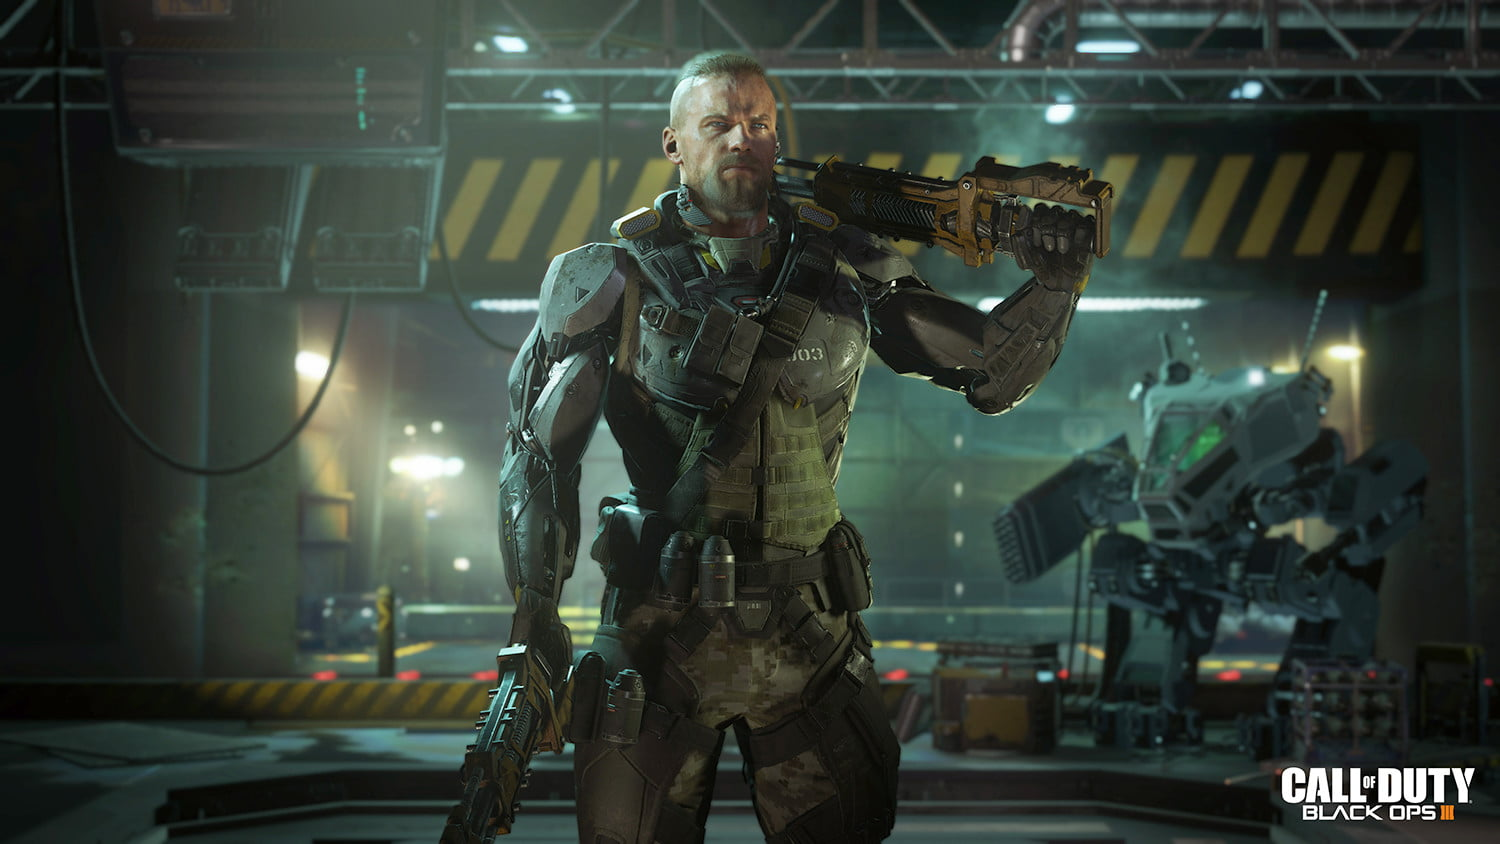 call of duty black ops 4 download pc + crack